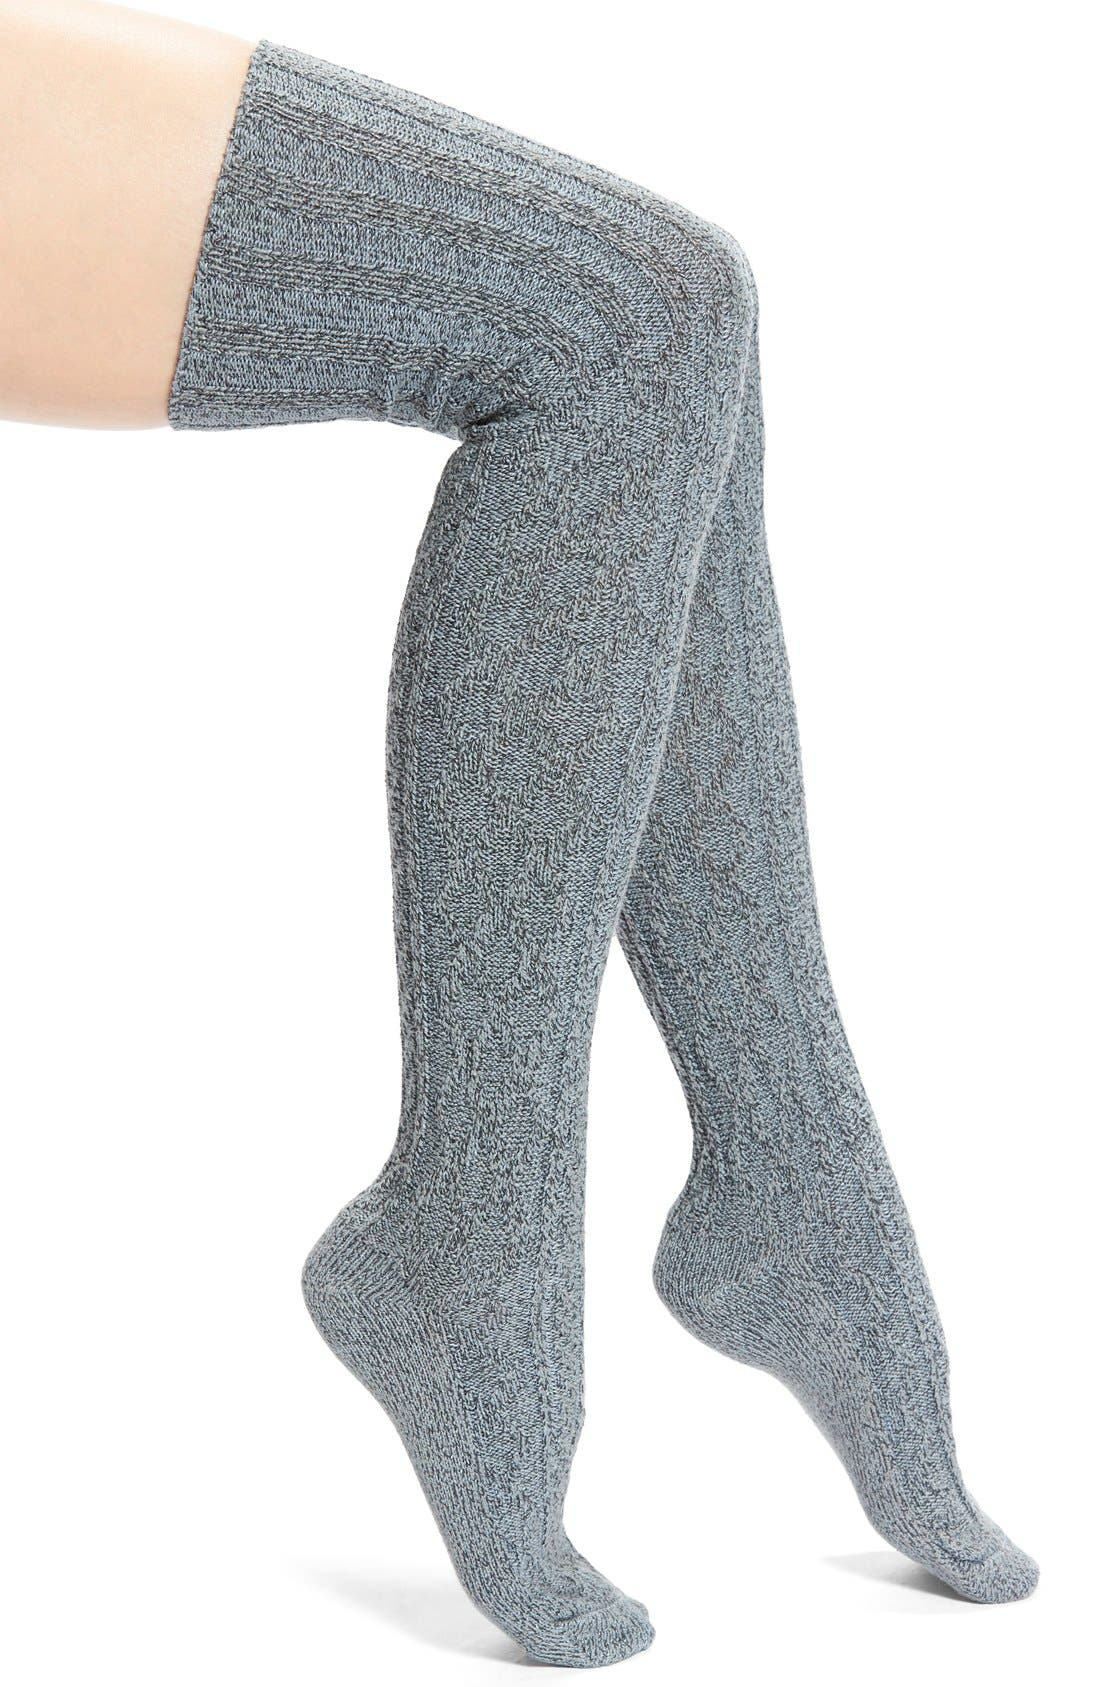 MarledCable Knit Thigh High Socks,                         Main,                         color, Charcoal